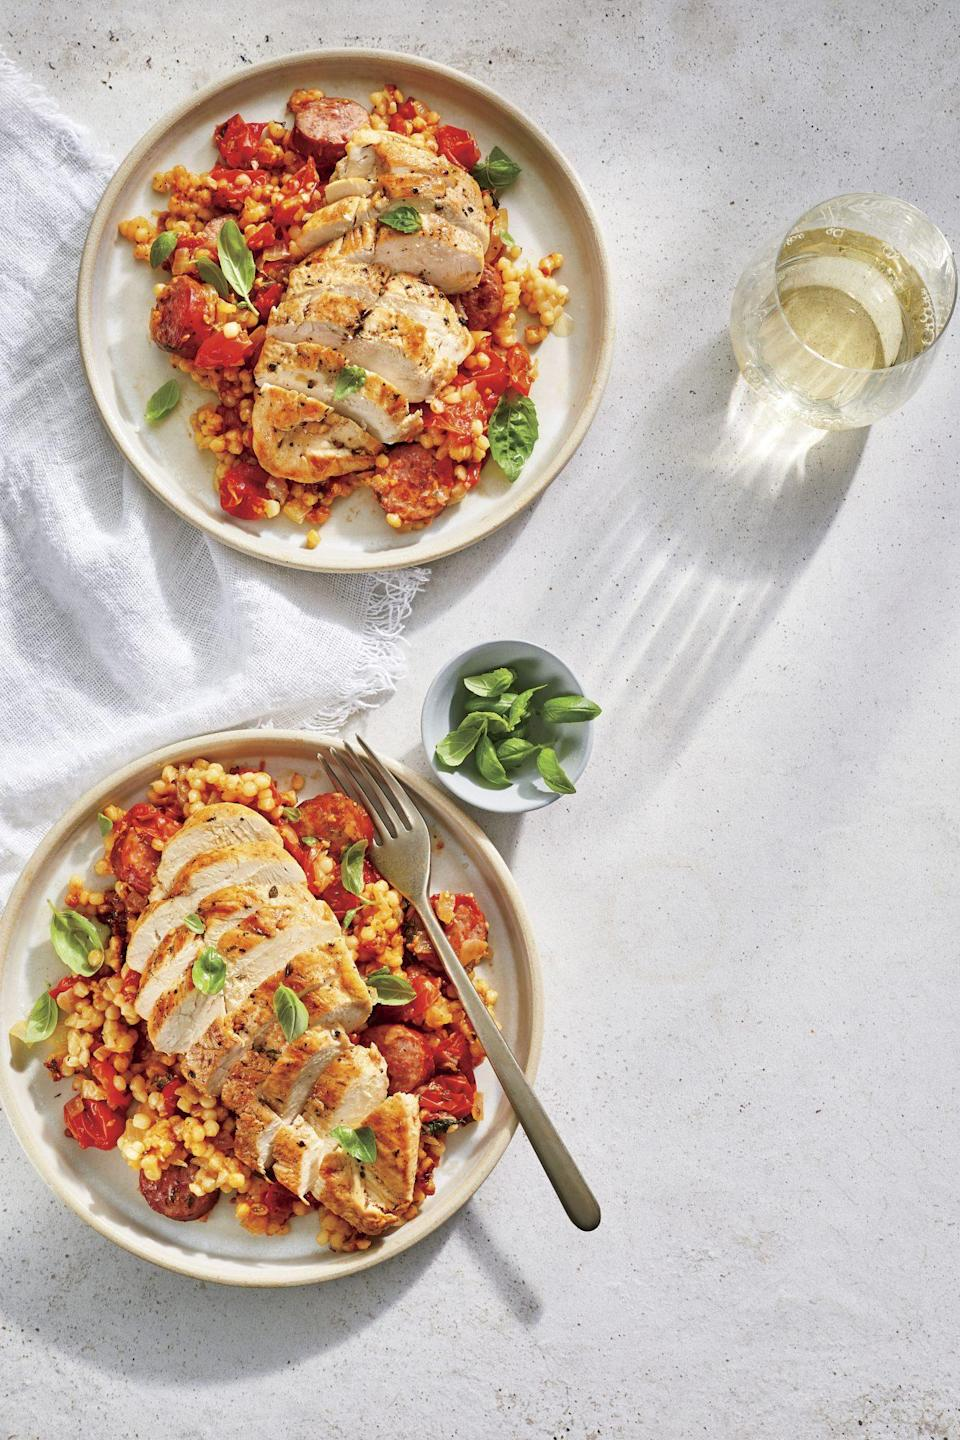 """<p><strong>Recipe: </strong><a href=""""https://www.southernliving.com/recipes/tomato-basil-couscous-chicken-sausage"""" rel=""""nofollow noopener"""" target=""""_blank"""" data-ylk=""""slk:Tomato-Basil Couscous with Chicken and Smoked Sausage"""" class=""""link rapid-noclick-resp""""><strong>Tomato-Basil Couscous with Chicken and Smoked Sausage</strong></a></p> <p>This one-pan dinner looks elegant enough for company, but this budget-friendly recipe comes together in less than 30 minutes.</p>"""